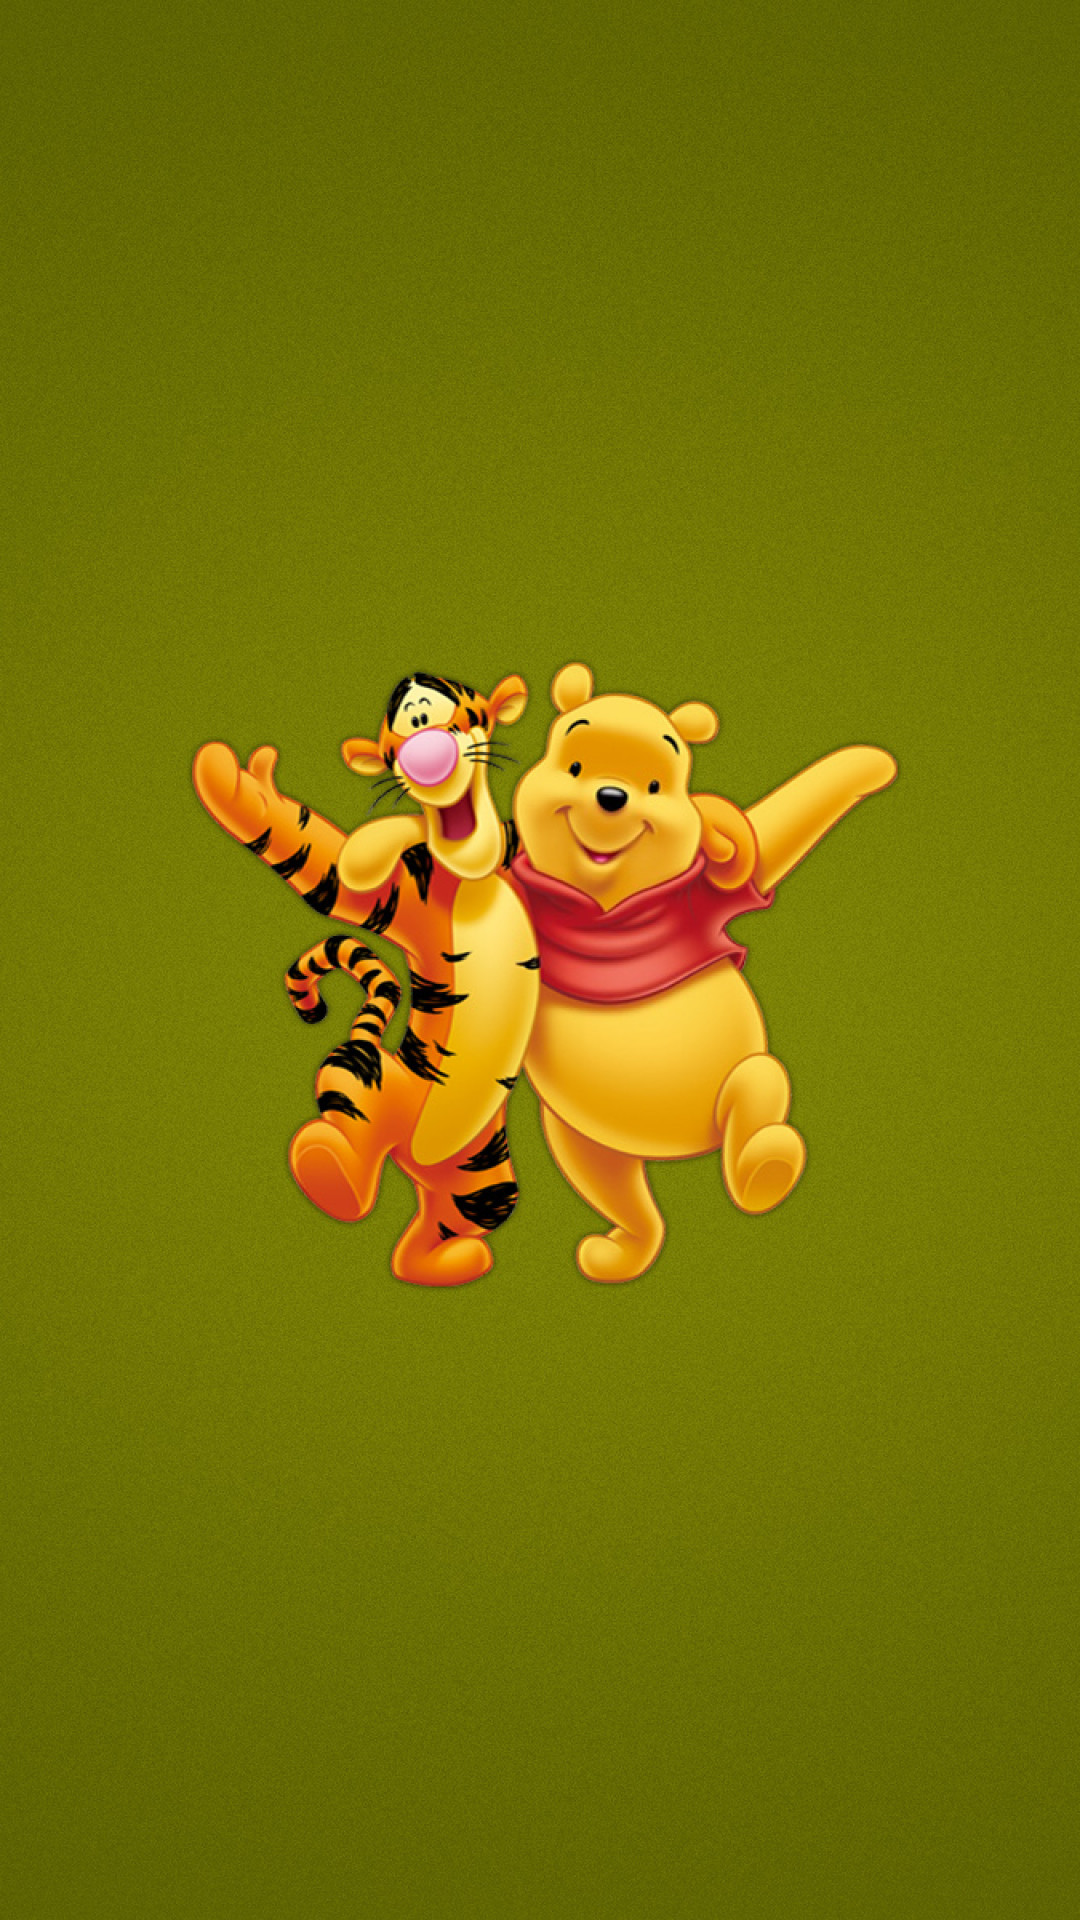 It's just a graphic of Declarative Pics of Winny the Pooh